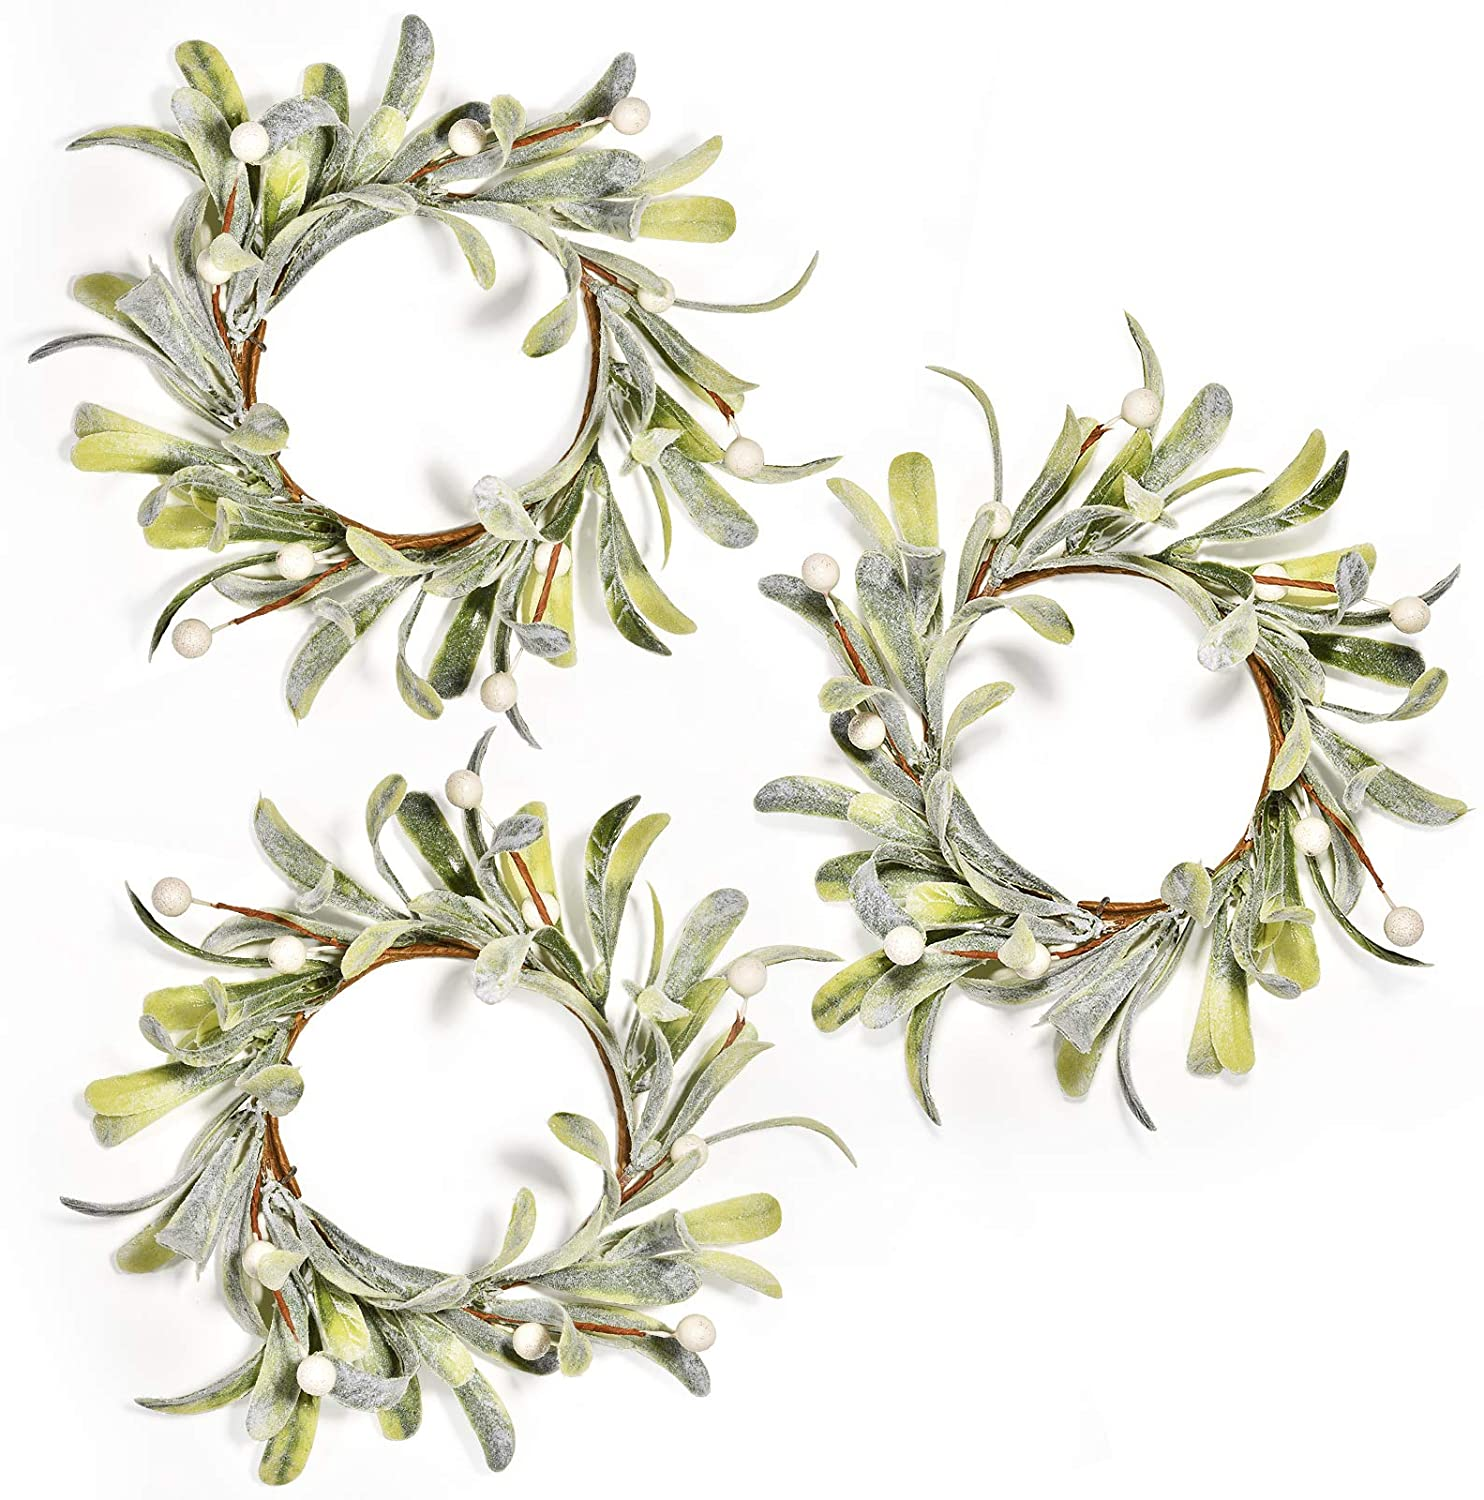 Feirui Pillar Candle Rings Set of 3, Frosted Mistletoe Wreaths with Pearl Accents,Christmas Holiday Parties and Home Decor